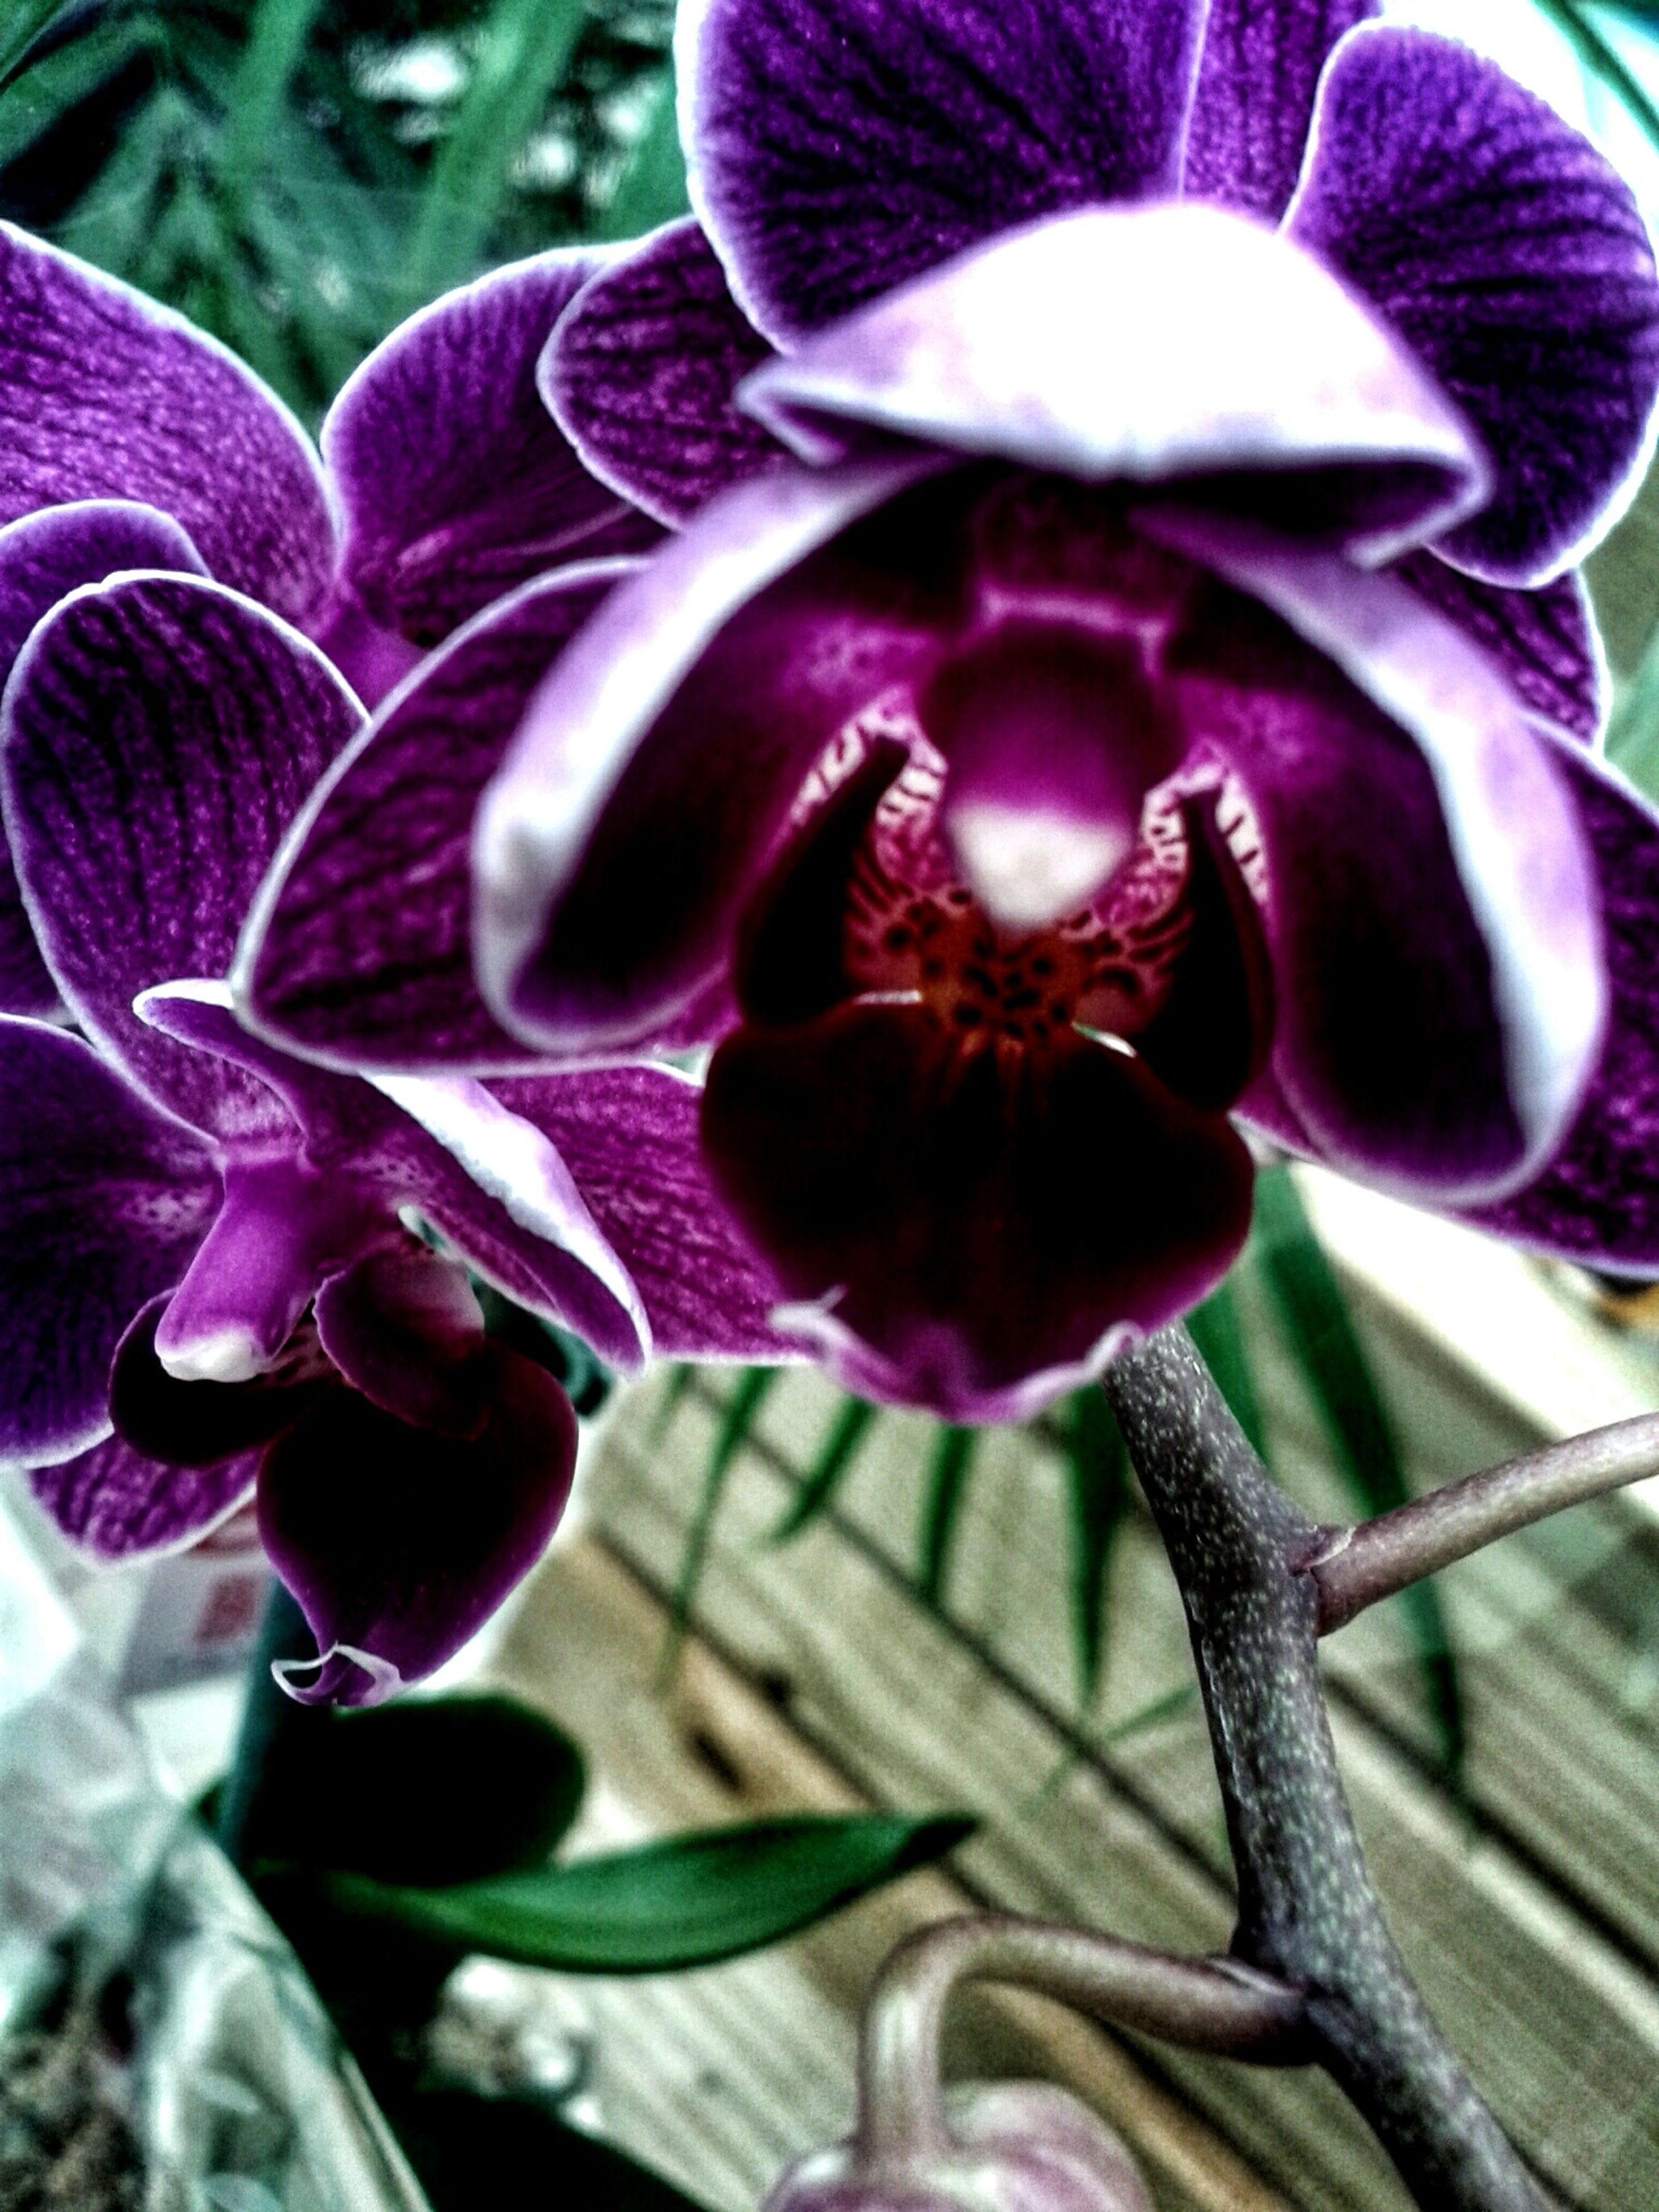 flower, purple, petal, fragility, close-up, freshness, focus on foreground, growth, flower head, beauty in nature, plant, nature, blooming, orchid, stem, outdoors, no people, day, in bloom, park - man made space